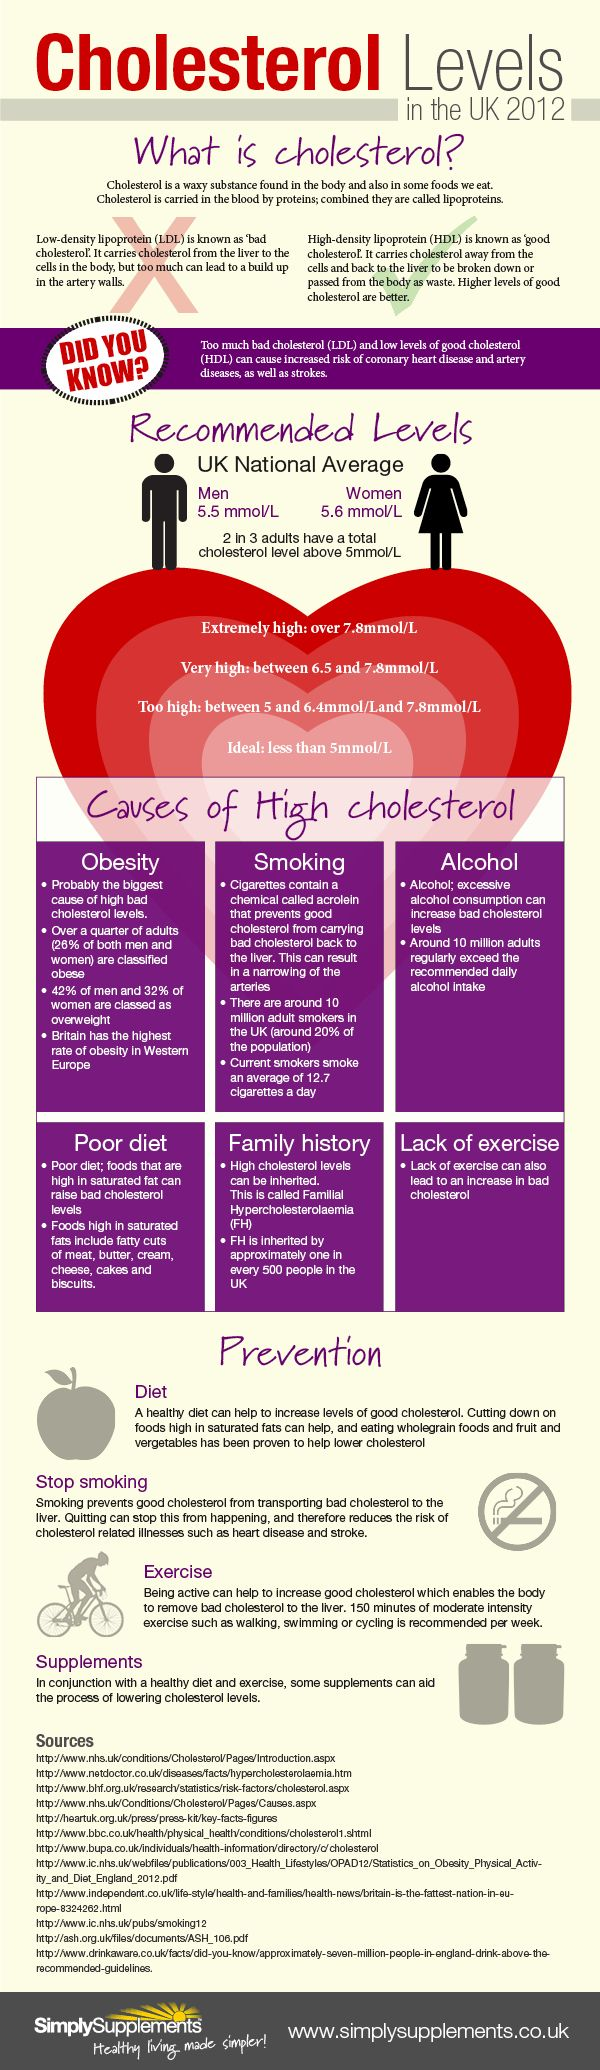 More about cholesterol:         http://www.heart.org/HEARTORG/Conditions/Cholesterol/AboutCholesterol/About-Cholesterol_UCM_001220_Article.jsp#mainContent